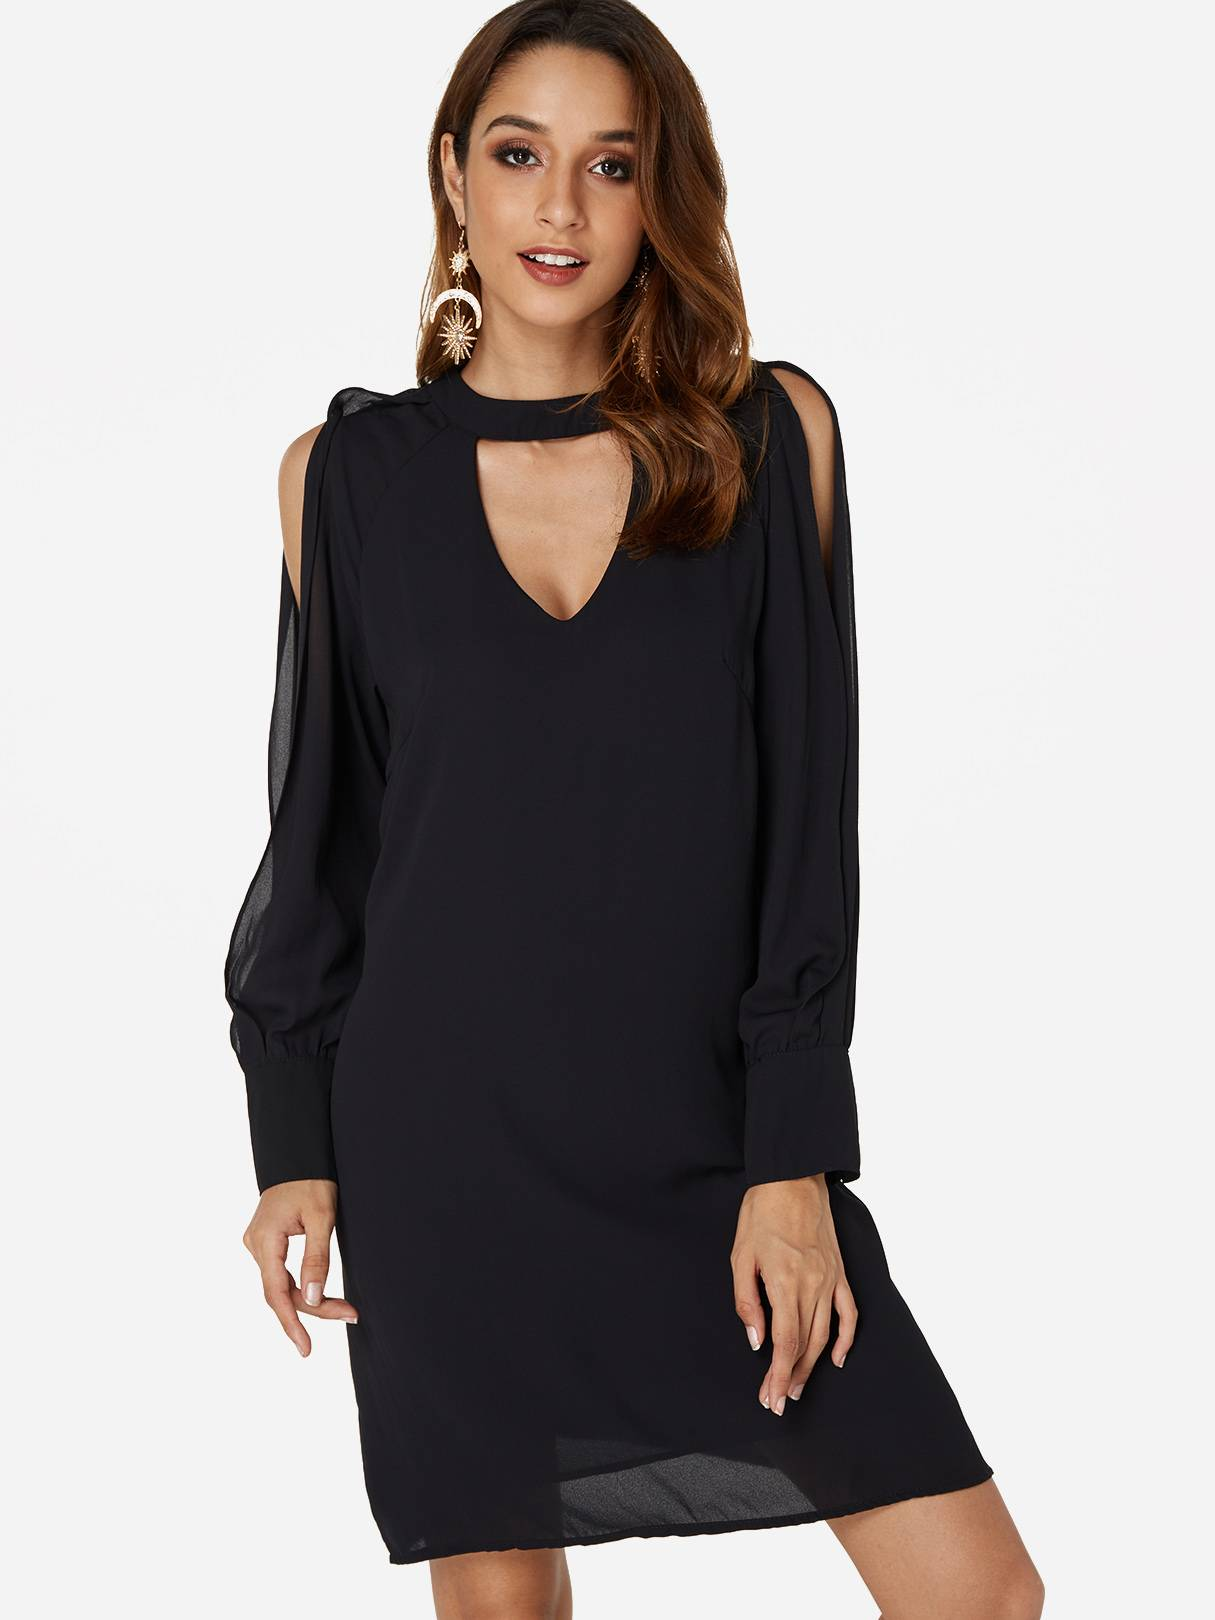 Image of Yoins Black V-neck Cold Shoulder Long Sleeves Chiffon Dress  - women - Black - Size: Extra Small